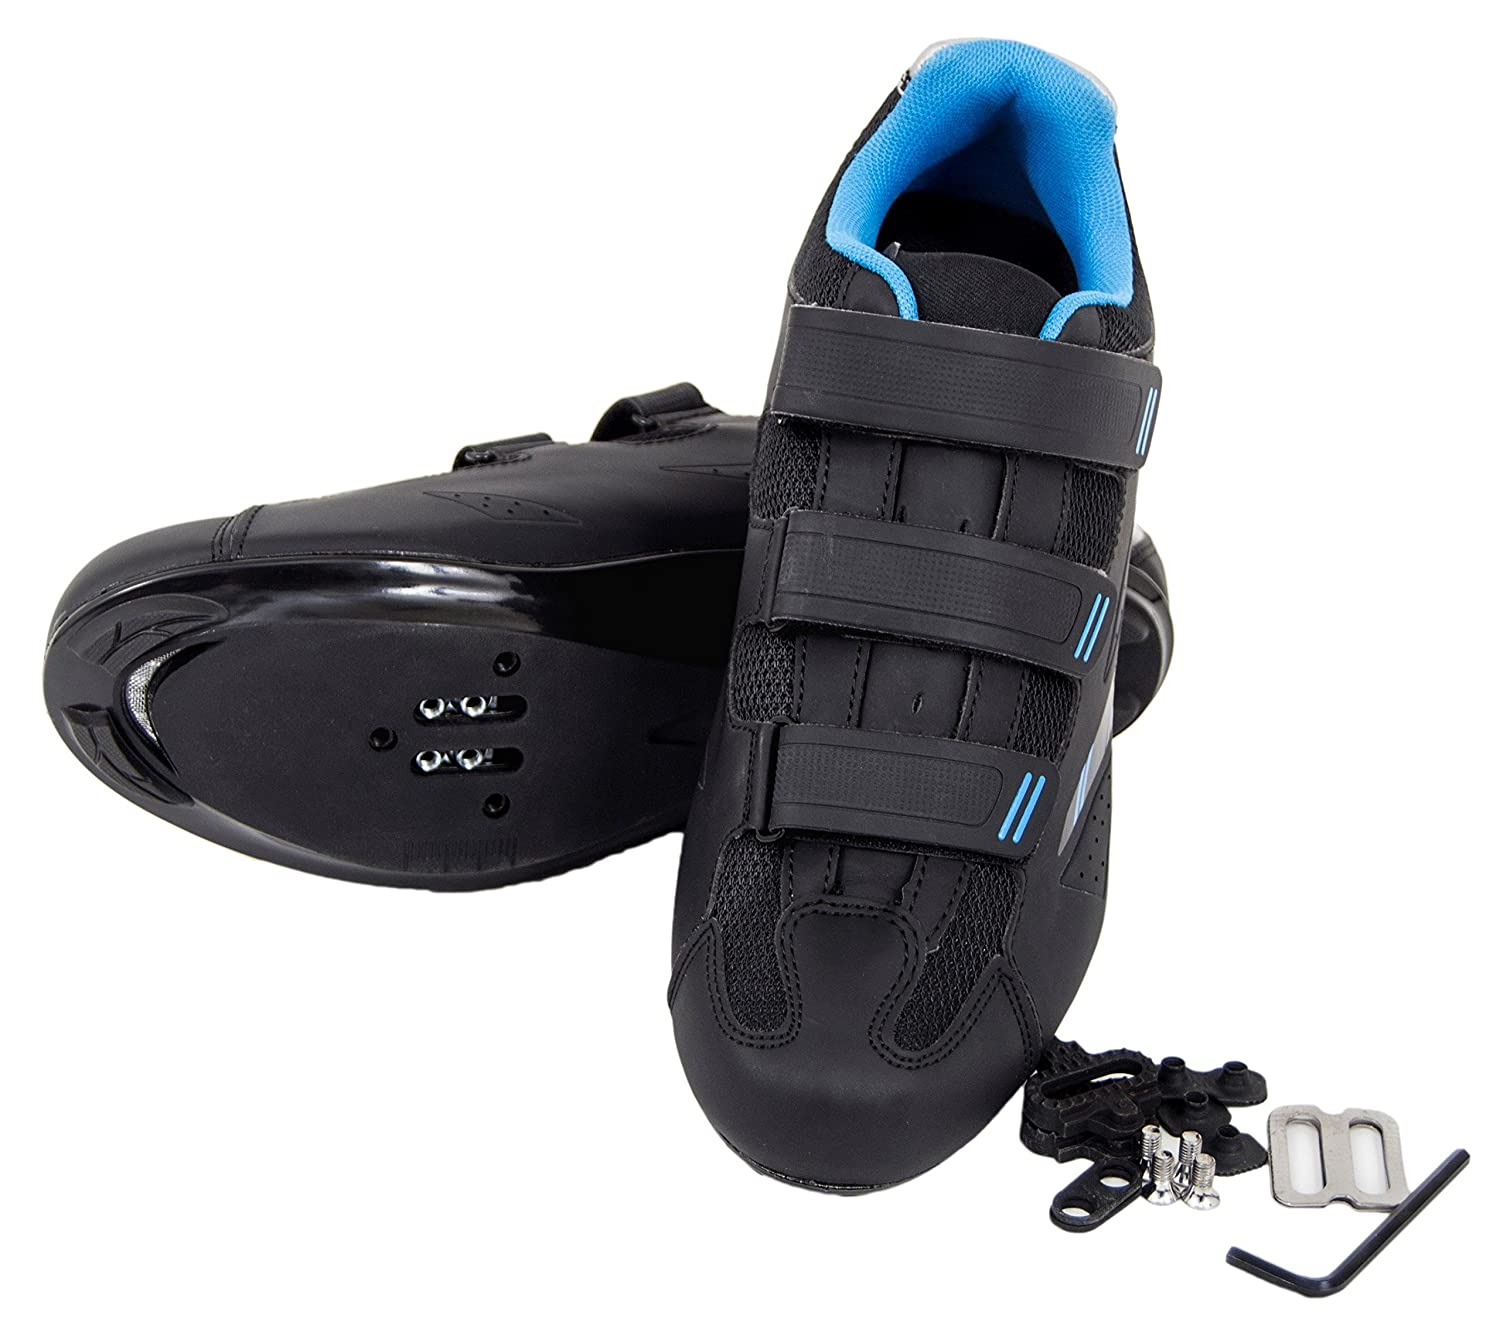 Tommaso Pista 100 Women's Spin Class Ready Cycling Shoe with Compatable Cleat - Black/Blue B07665HQDW 41 EU/ 10 US W|Spd